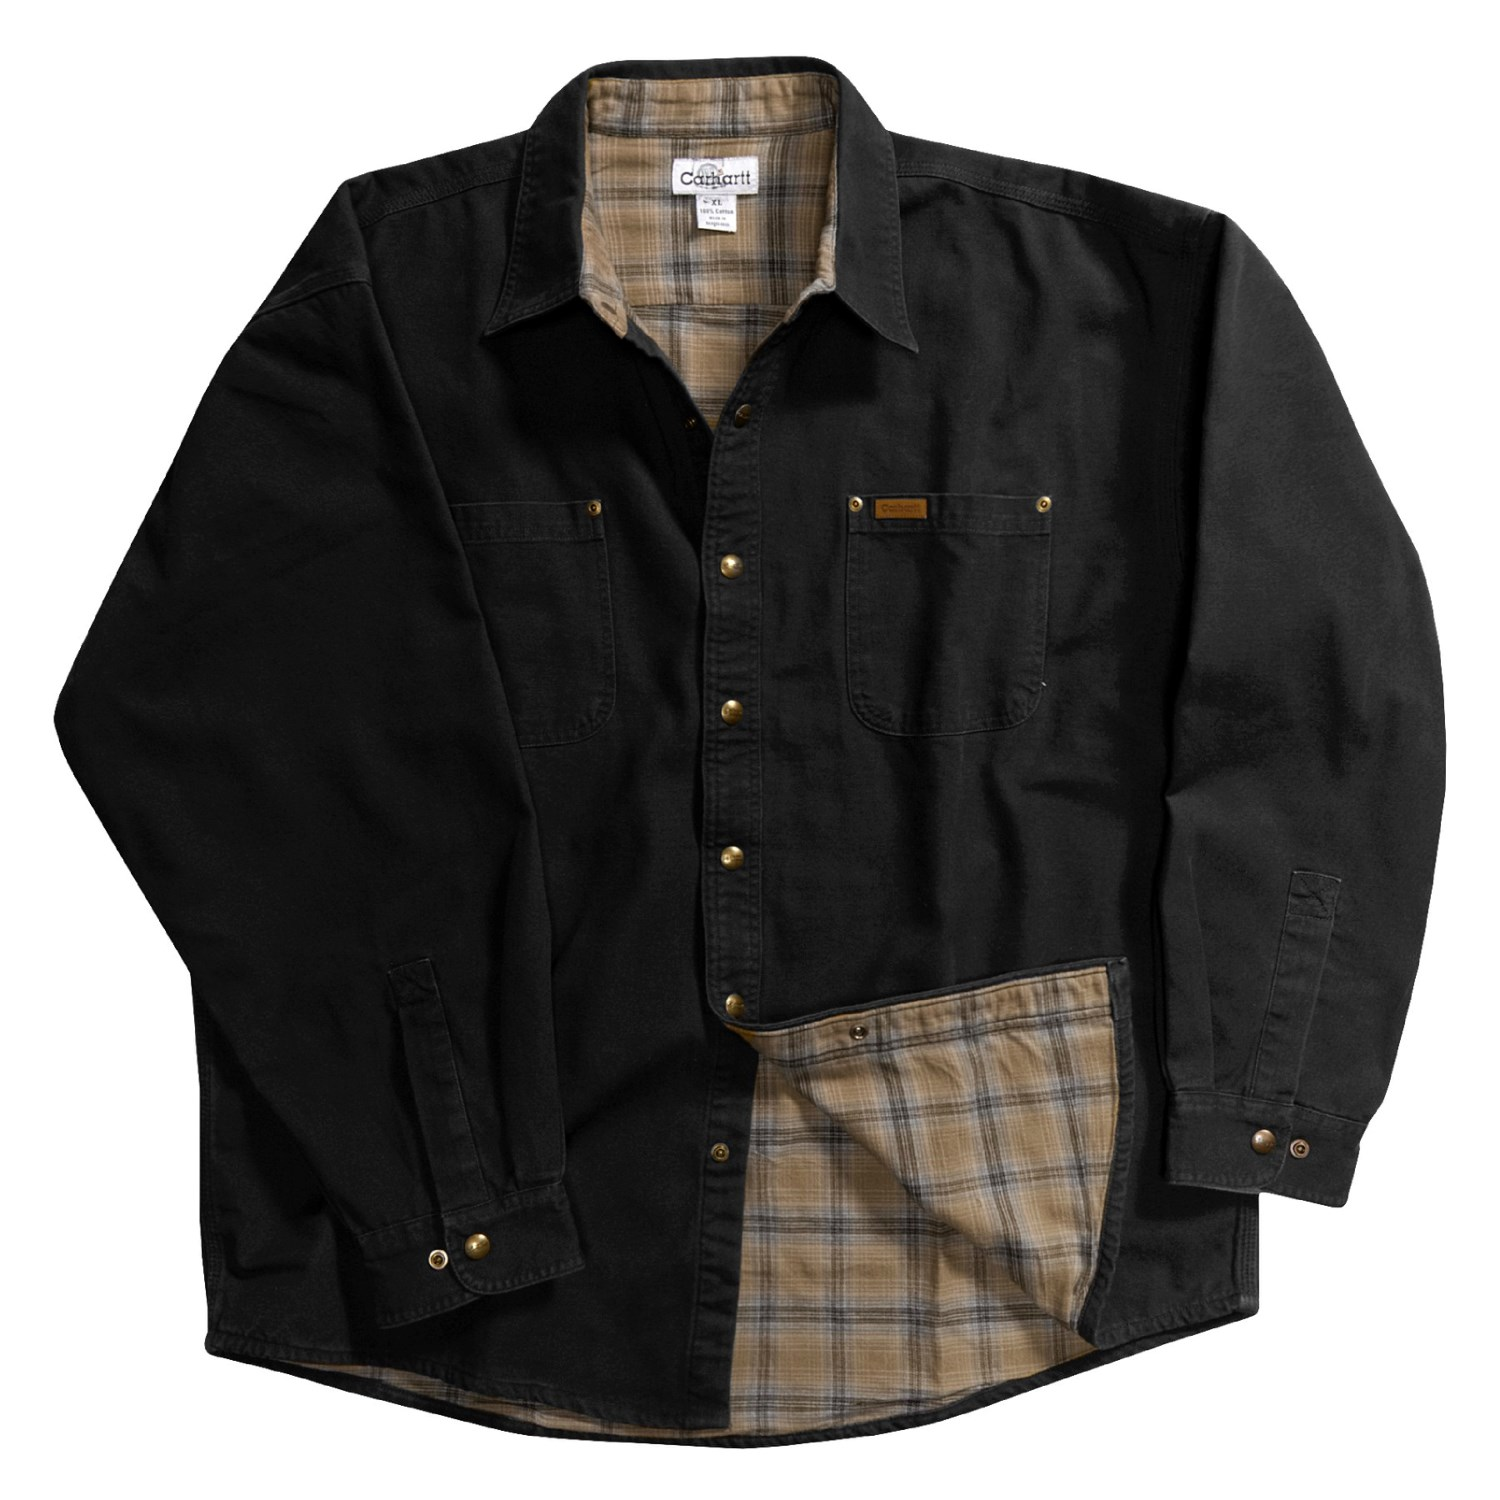 Carhartt Canvas Shirt Jacket For Tall Men 2122y